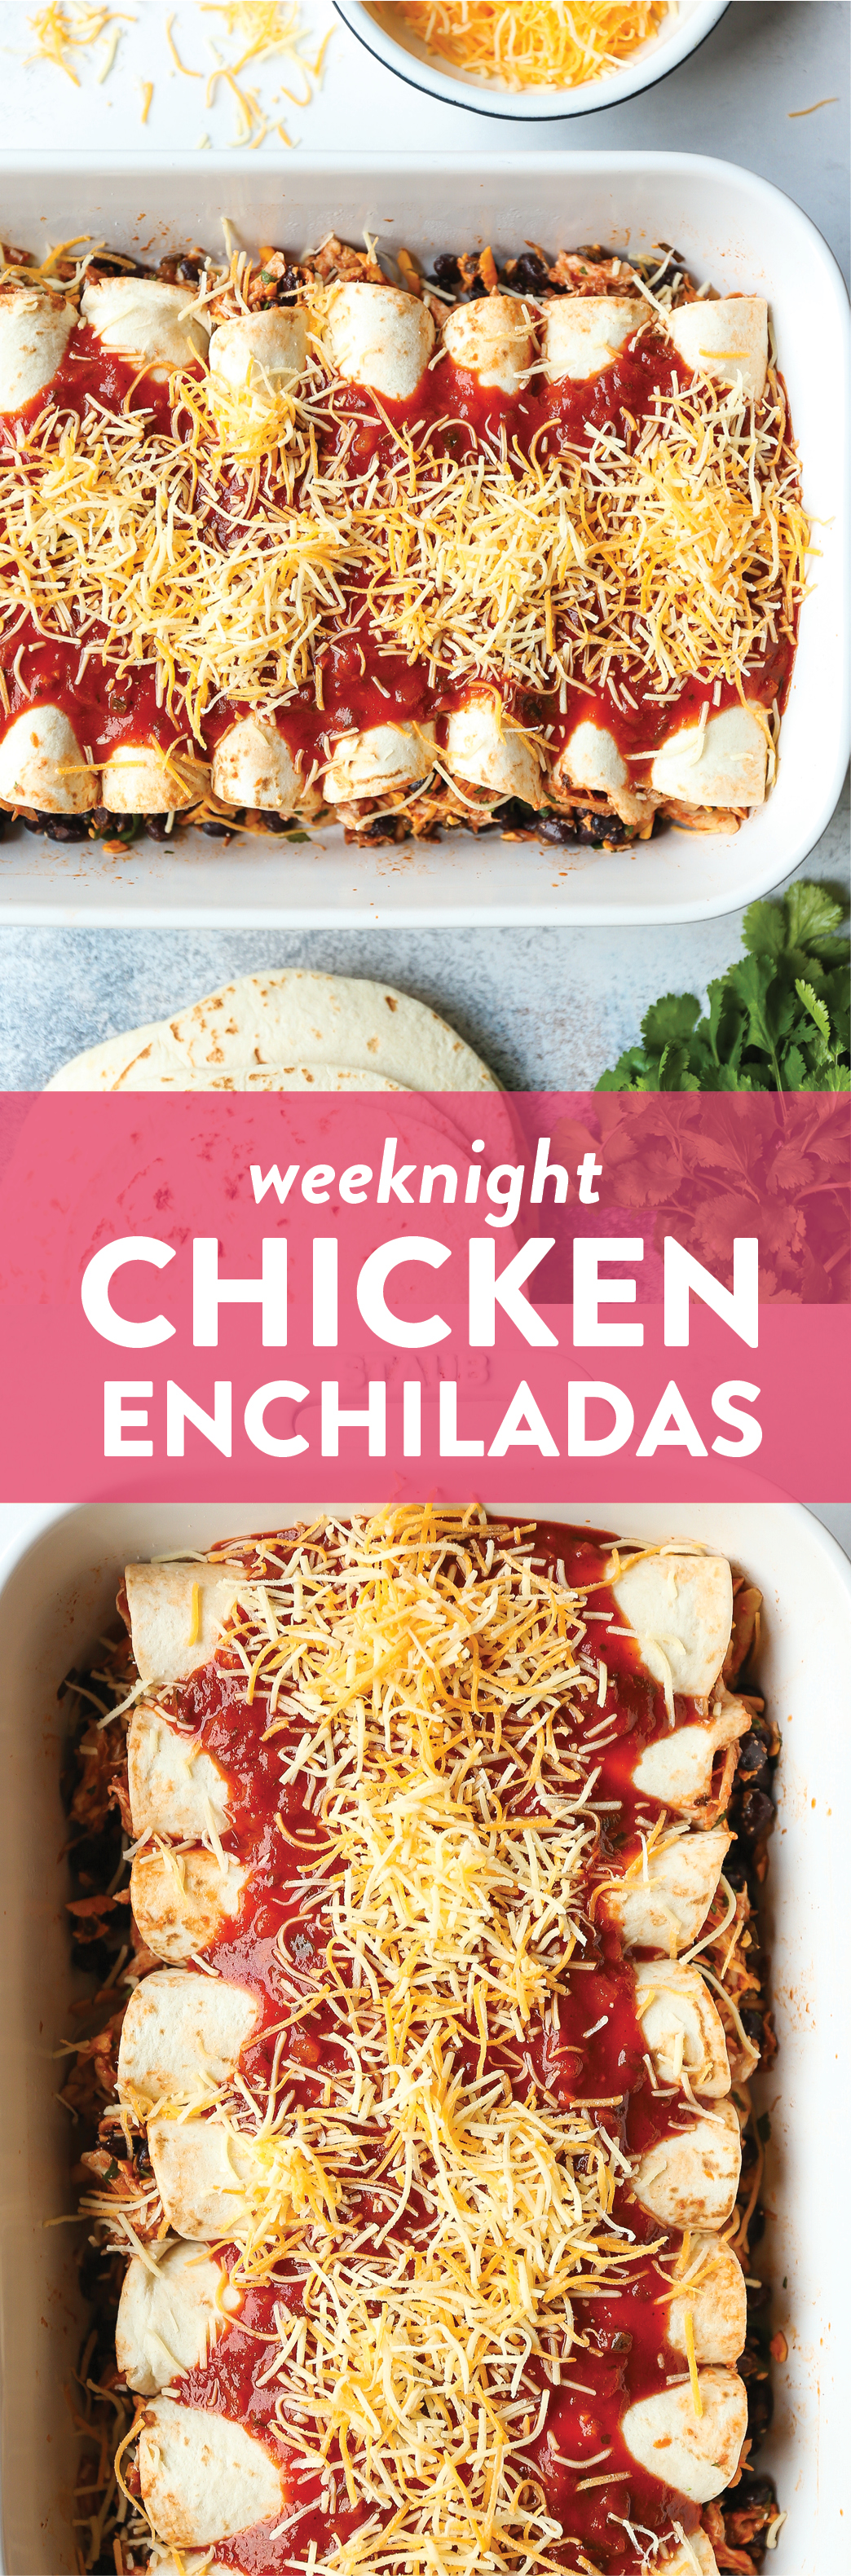 Weeknight Chicken Enchiladas - Classic chicken and black bean enchiladas for those busy weeknights! Easy to assemble with a quick homemade enchilada sauce!